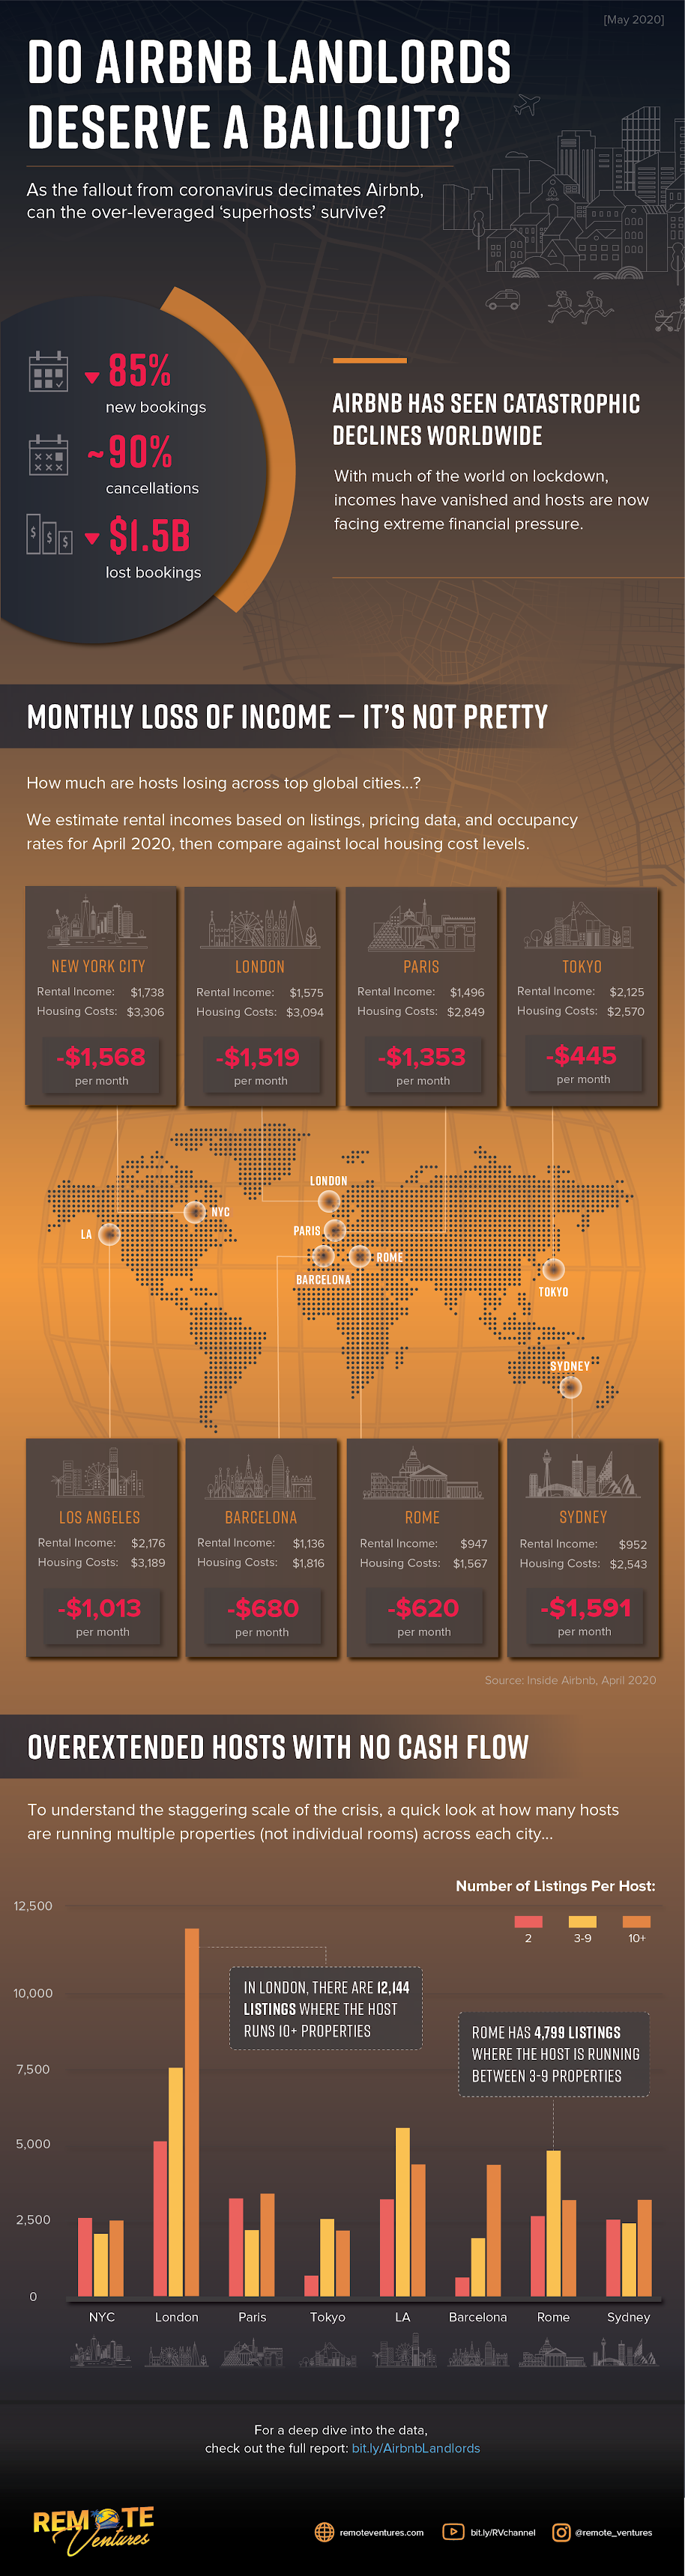 Do Airbnb Landlords Deserve a Bailout #infographic